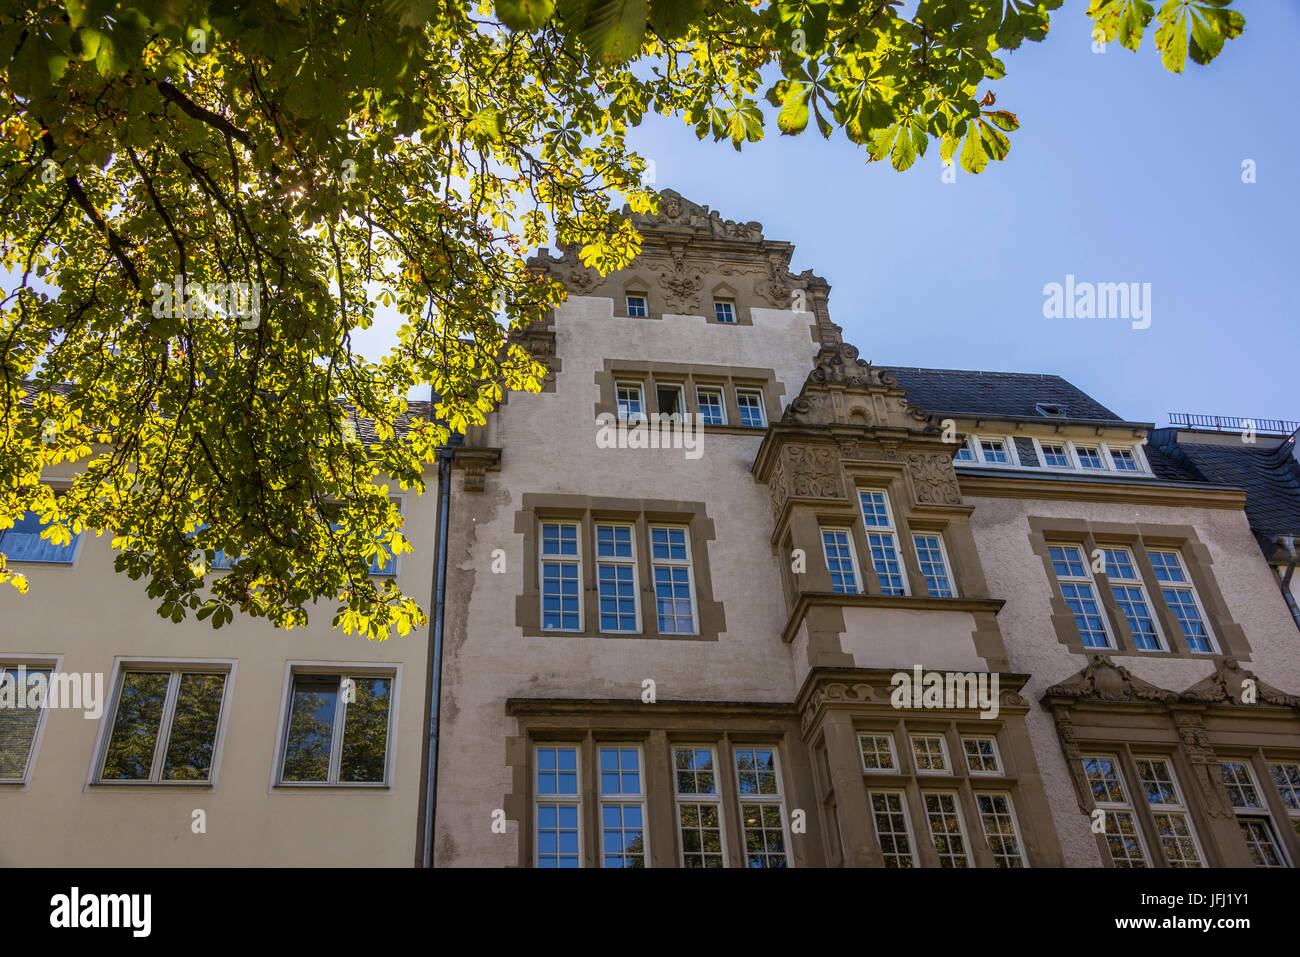 Europe, Germany, Rhineland-Palatinate, the Moselle, Moselle valley, Trier, Old Town, former banking house of Reverchon - Stock Image